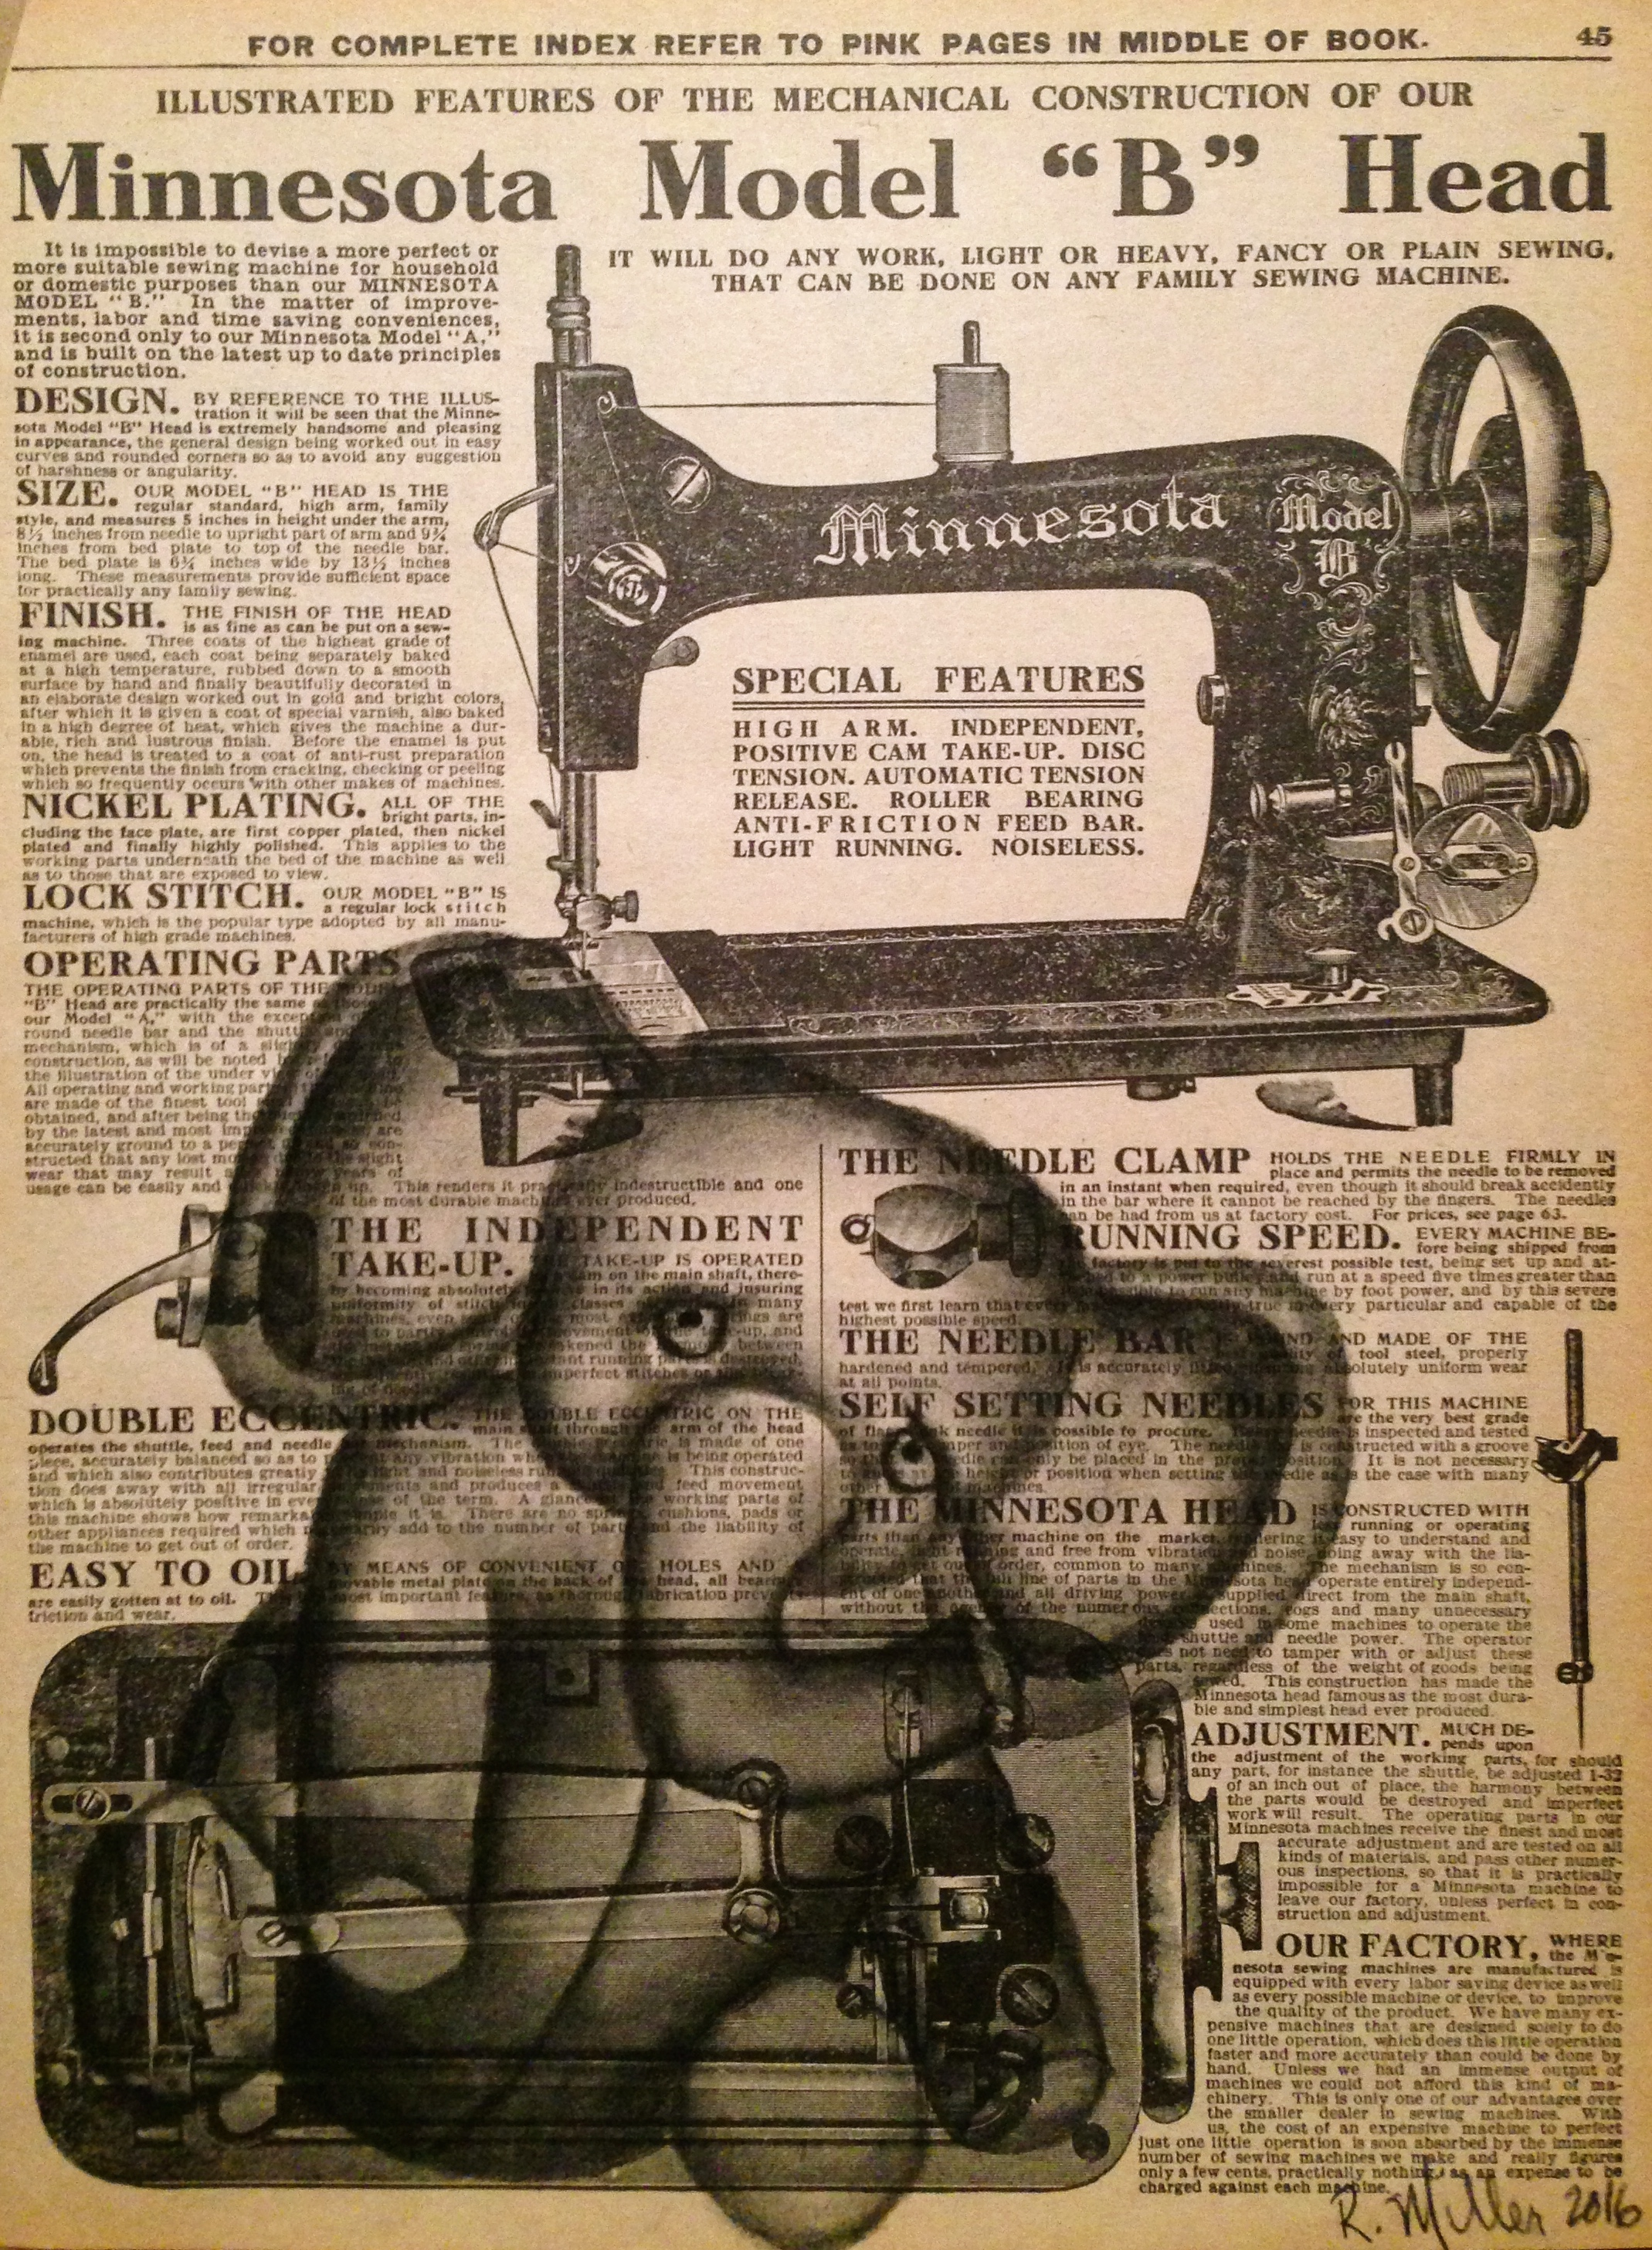 Pachyderm Patch, 2016   Charcoal on antique catalog